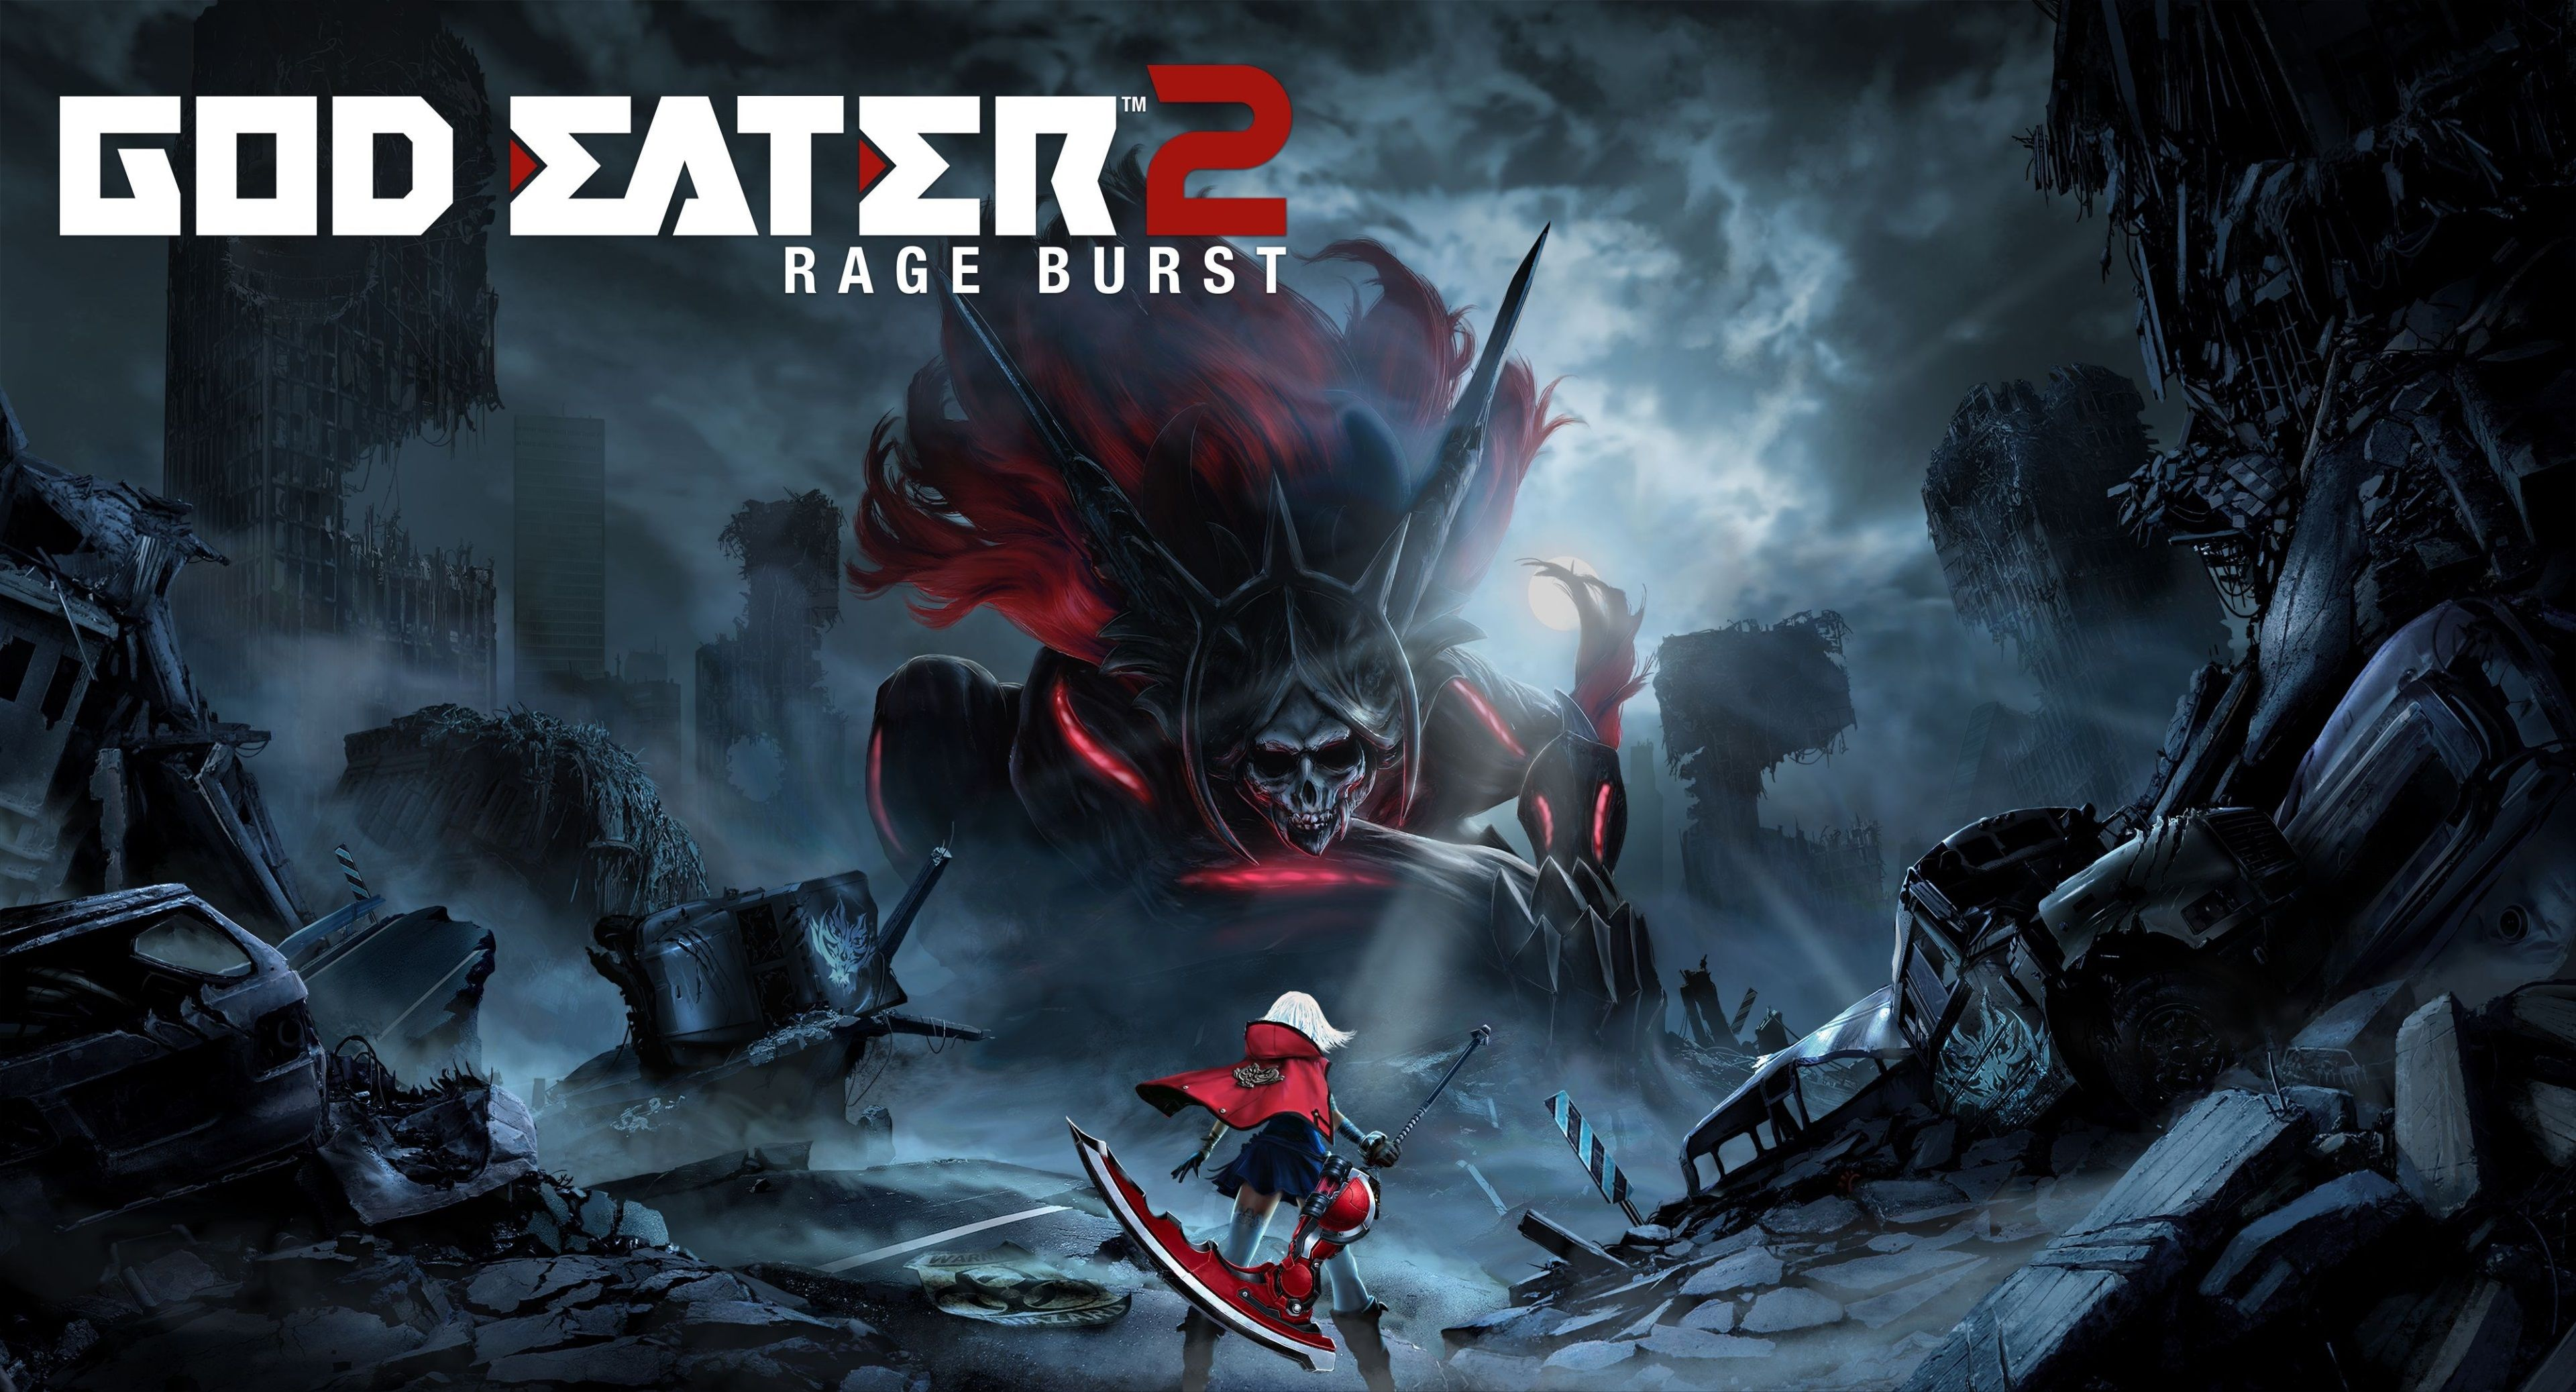 3840x2075 Games 4k Wallpapers 1080p High Quality God Eater 2 Rwby Wallpaper High Def Wallpapers